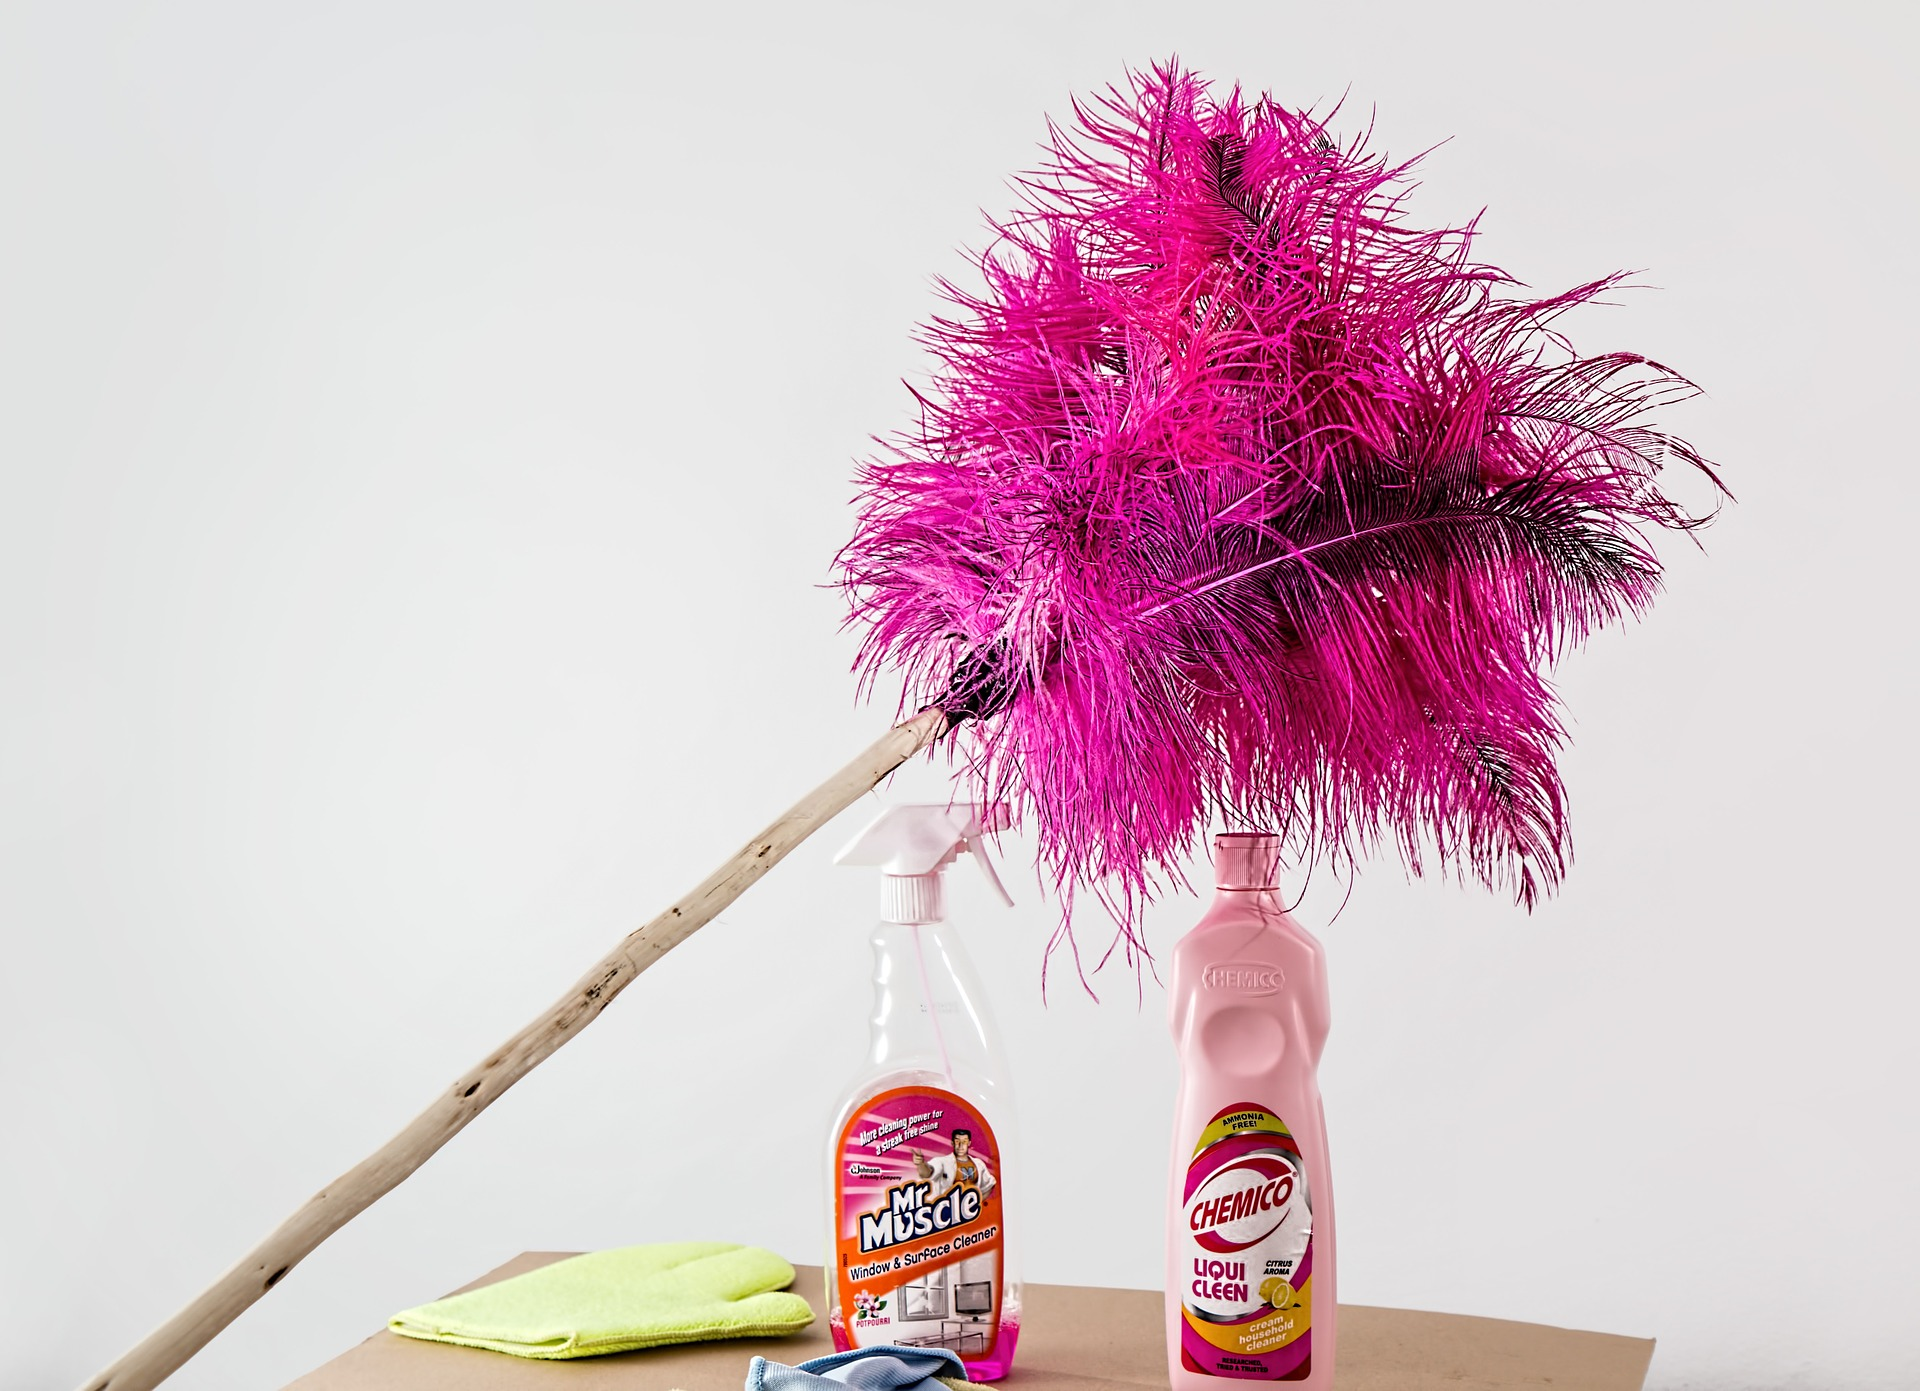 Dusting is included in the commercial cleaning services that we receive.